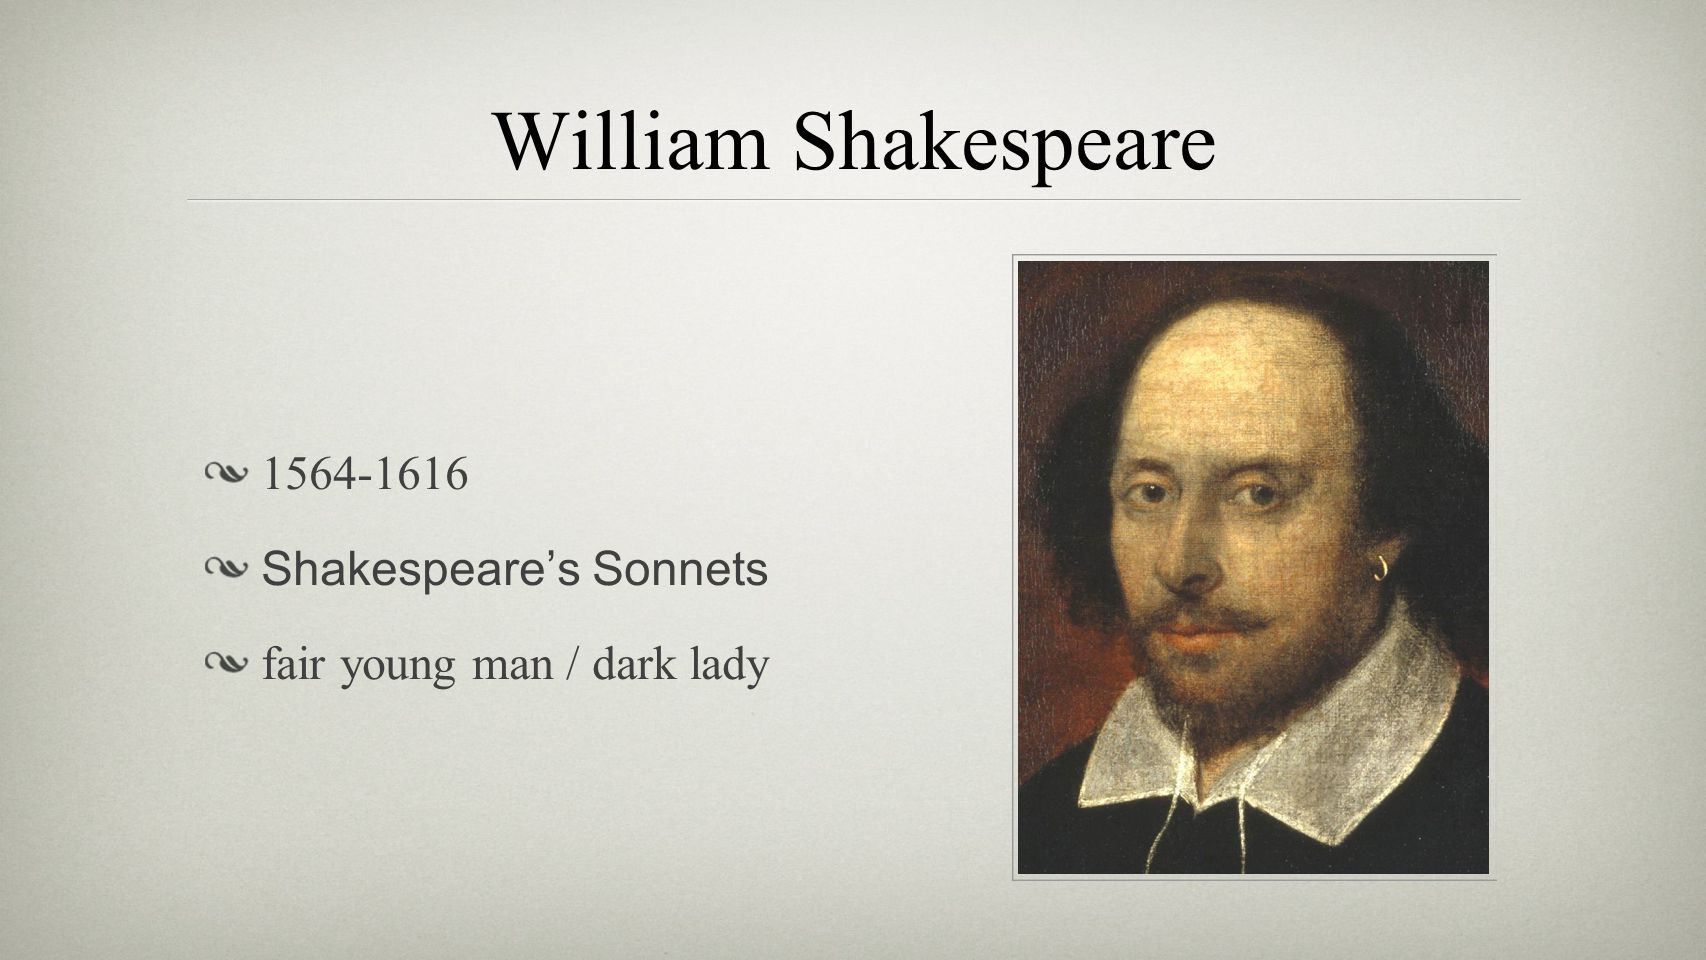 William Shakespeare 1564-1616 Shakespeare's Sonnets fair young man / dark lady